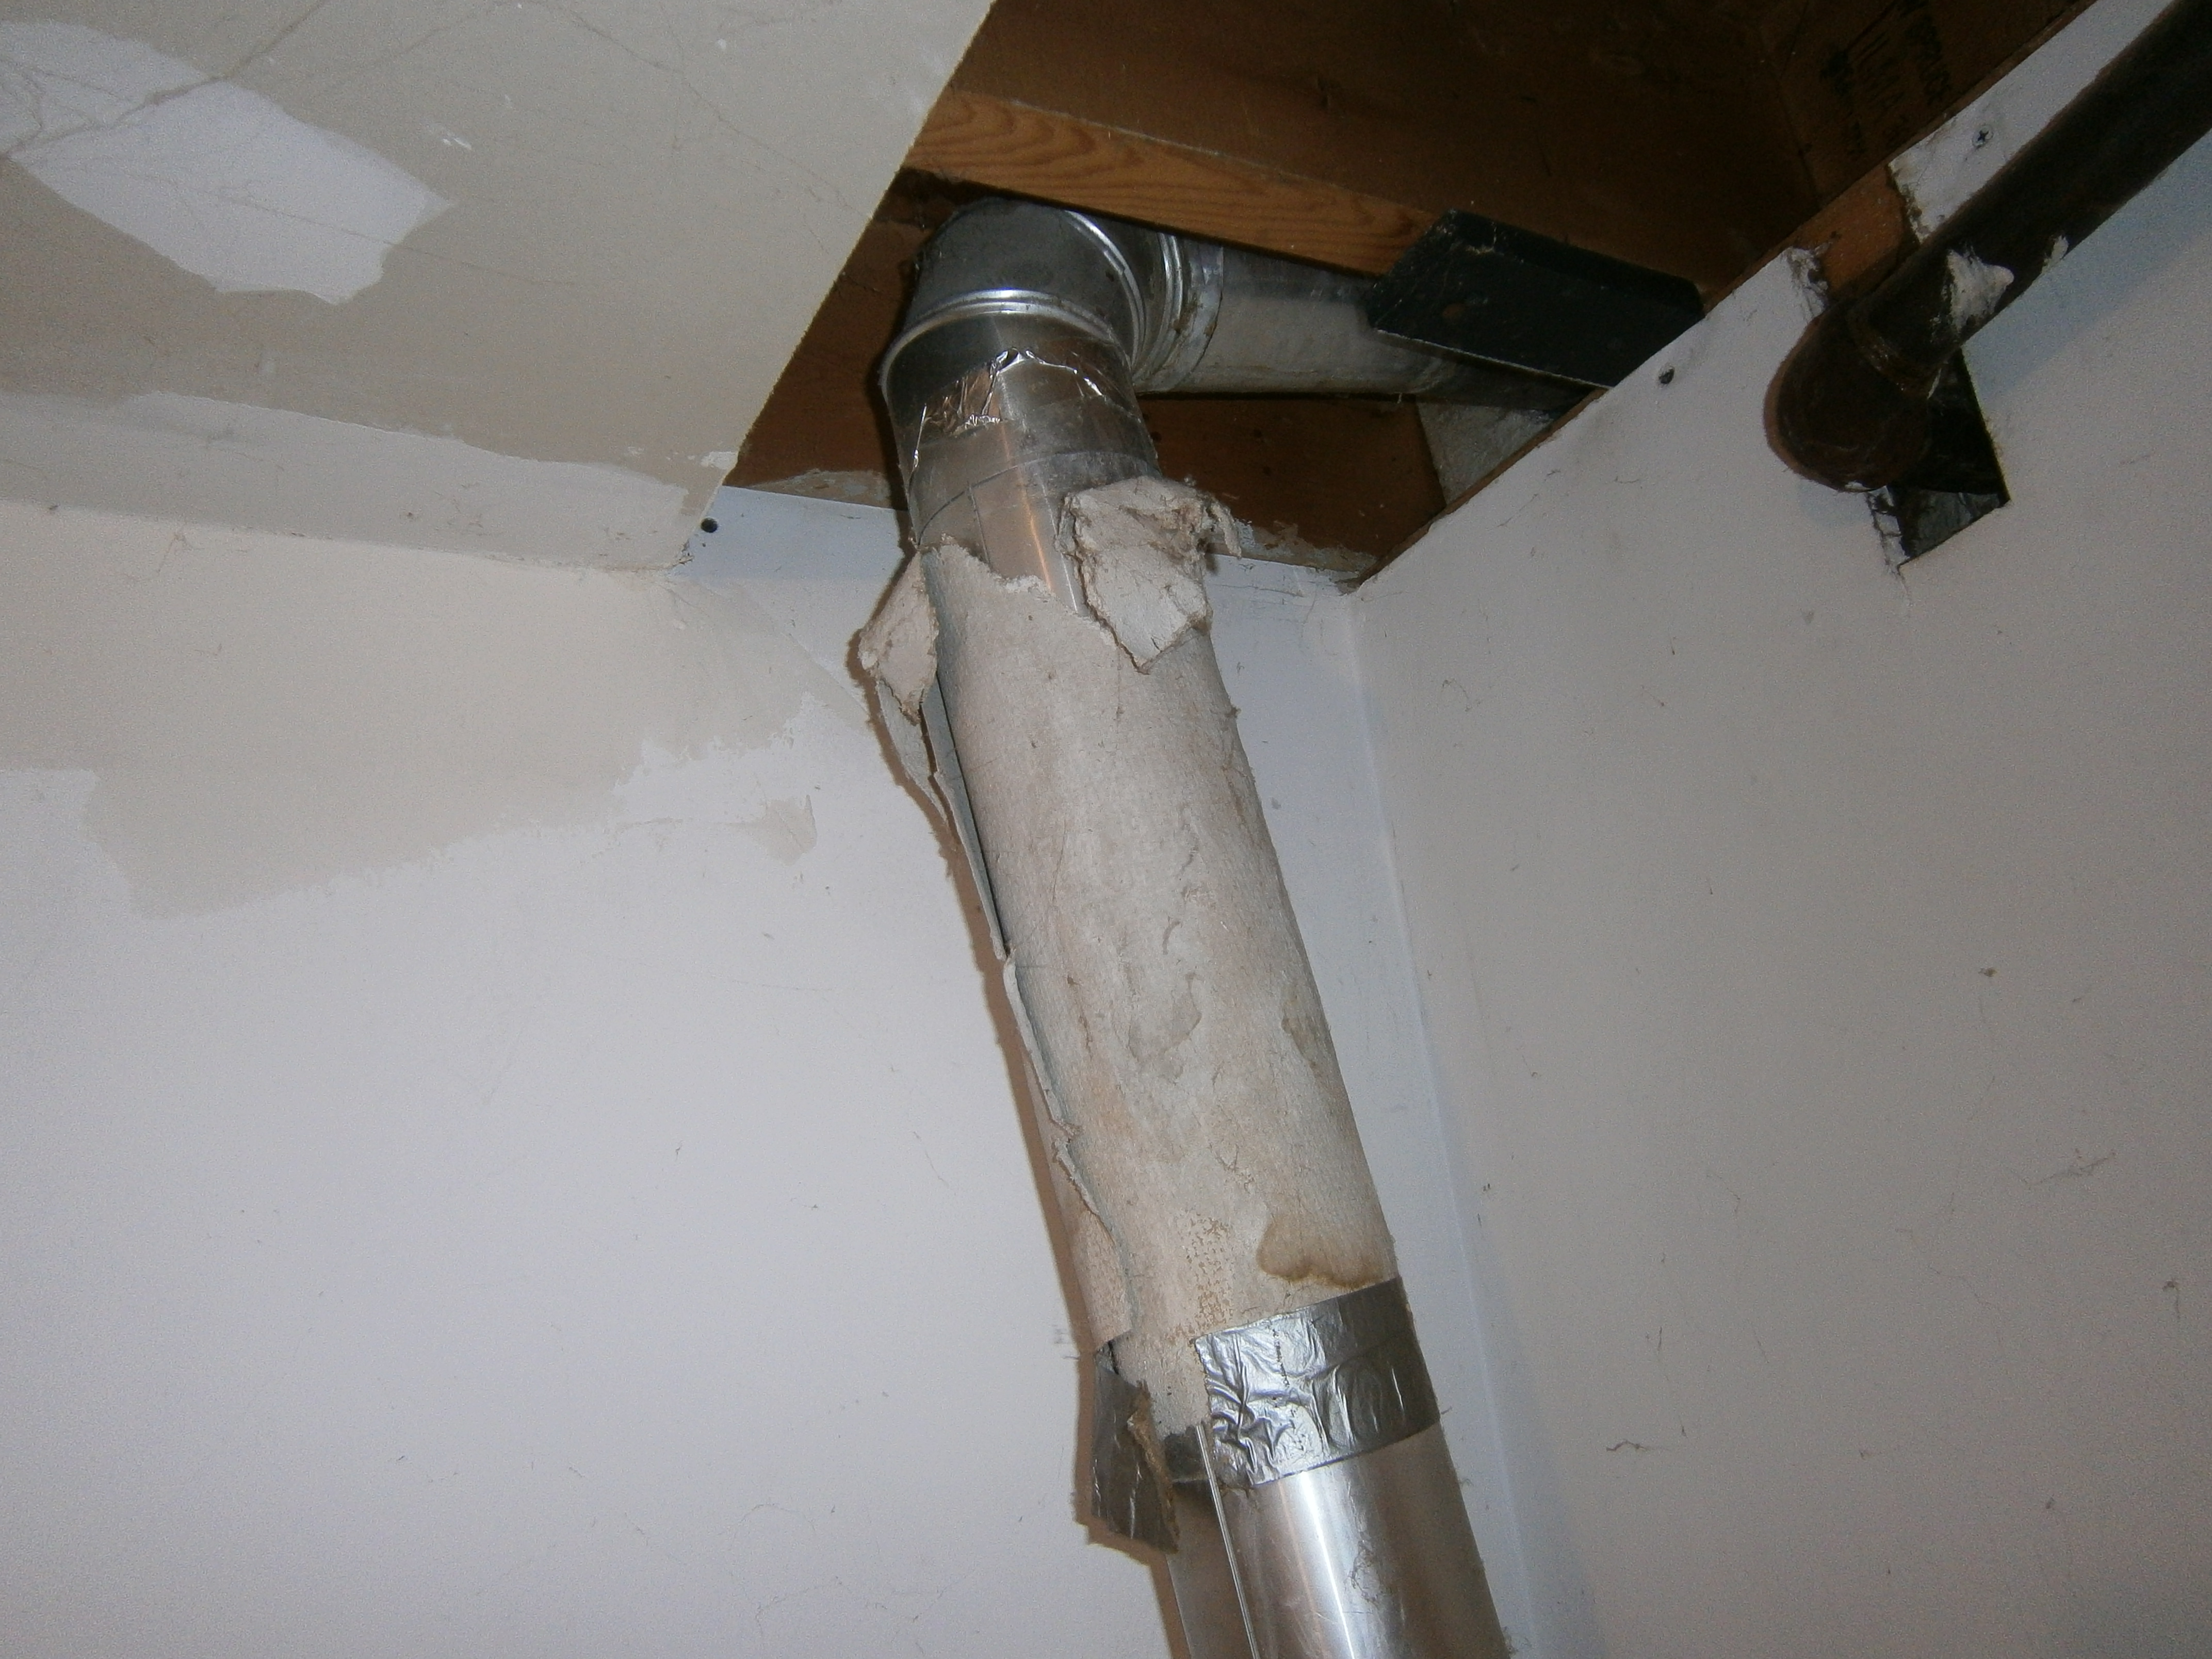 Asbestos Pipe Insulation, Asbestos Removal, Asbestos Procedure, Asbestos Remediation, Restoration Services